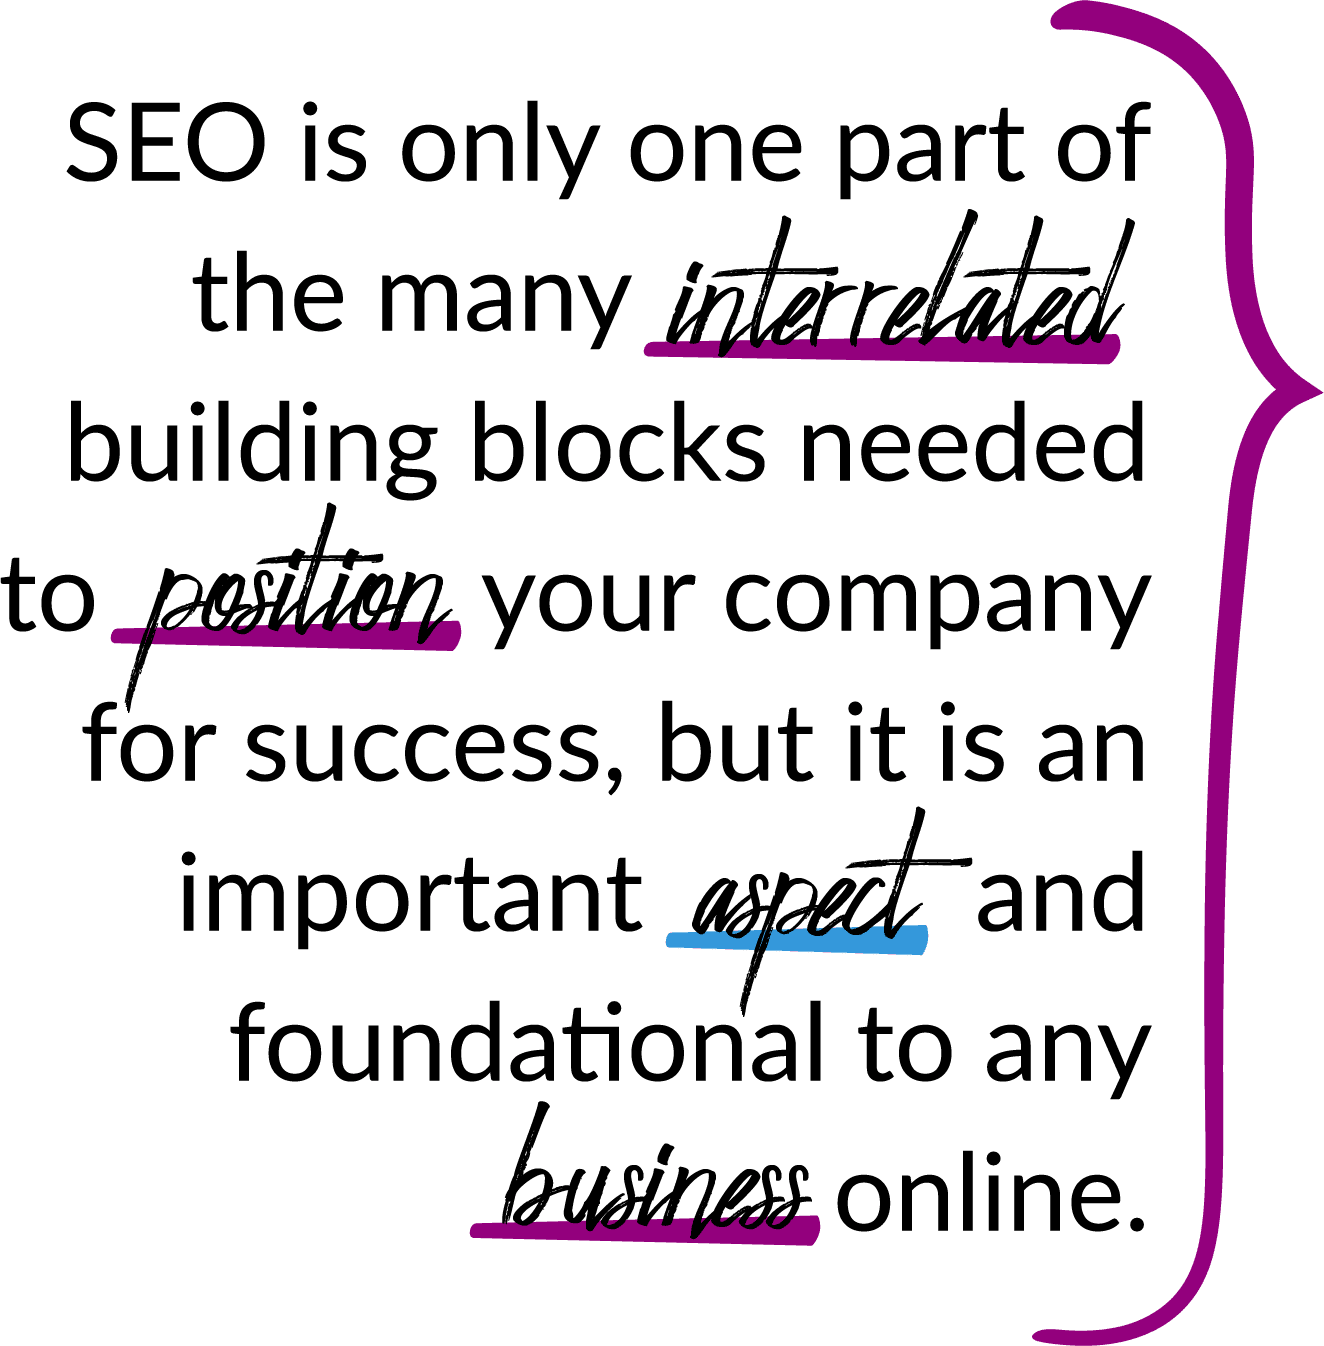 SEO is only one part of the many interrelated building blocks